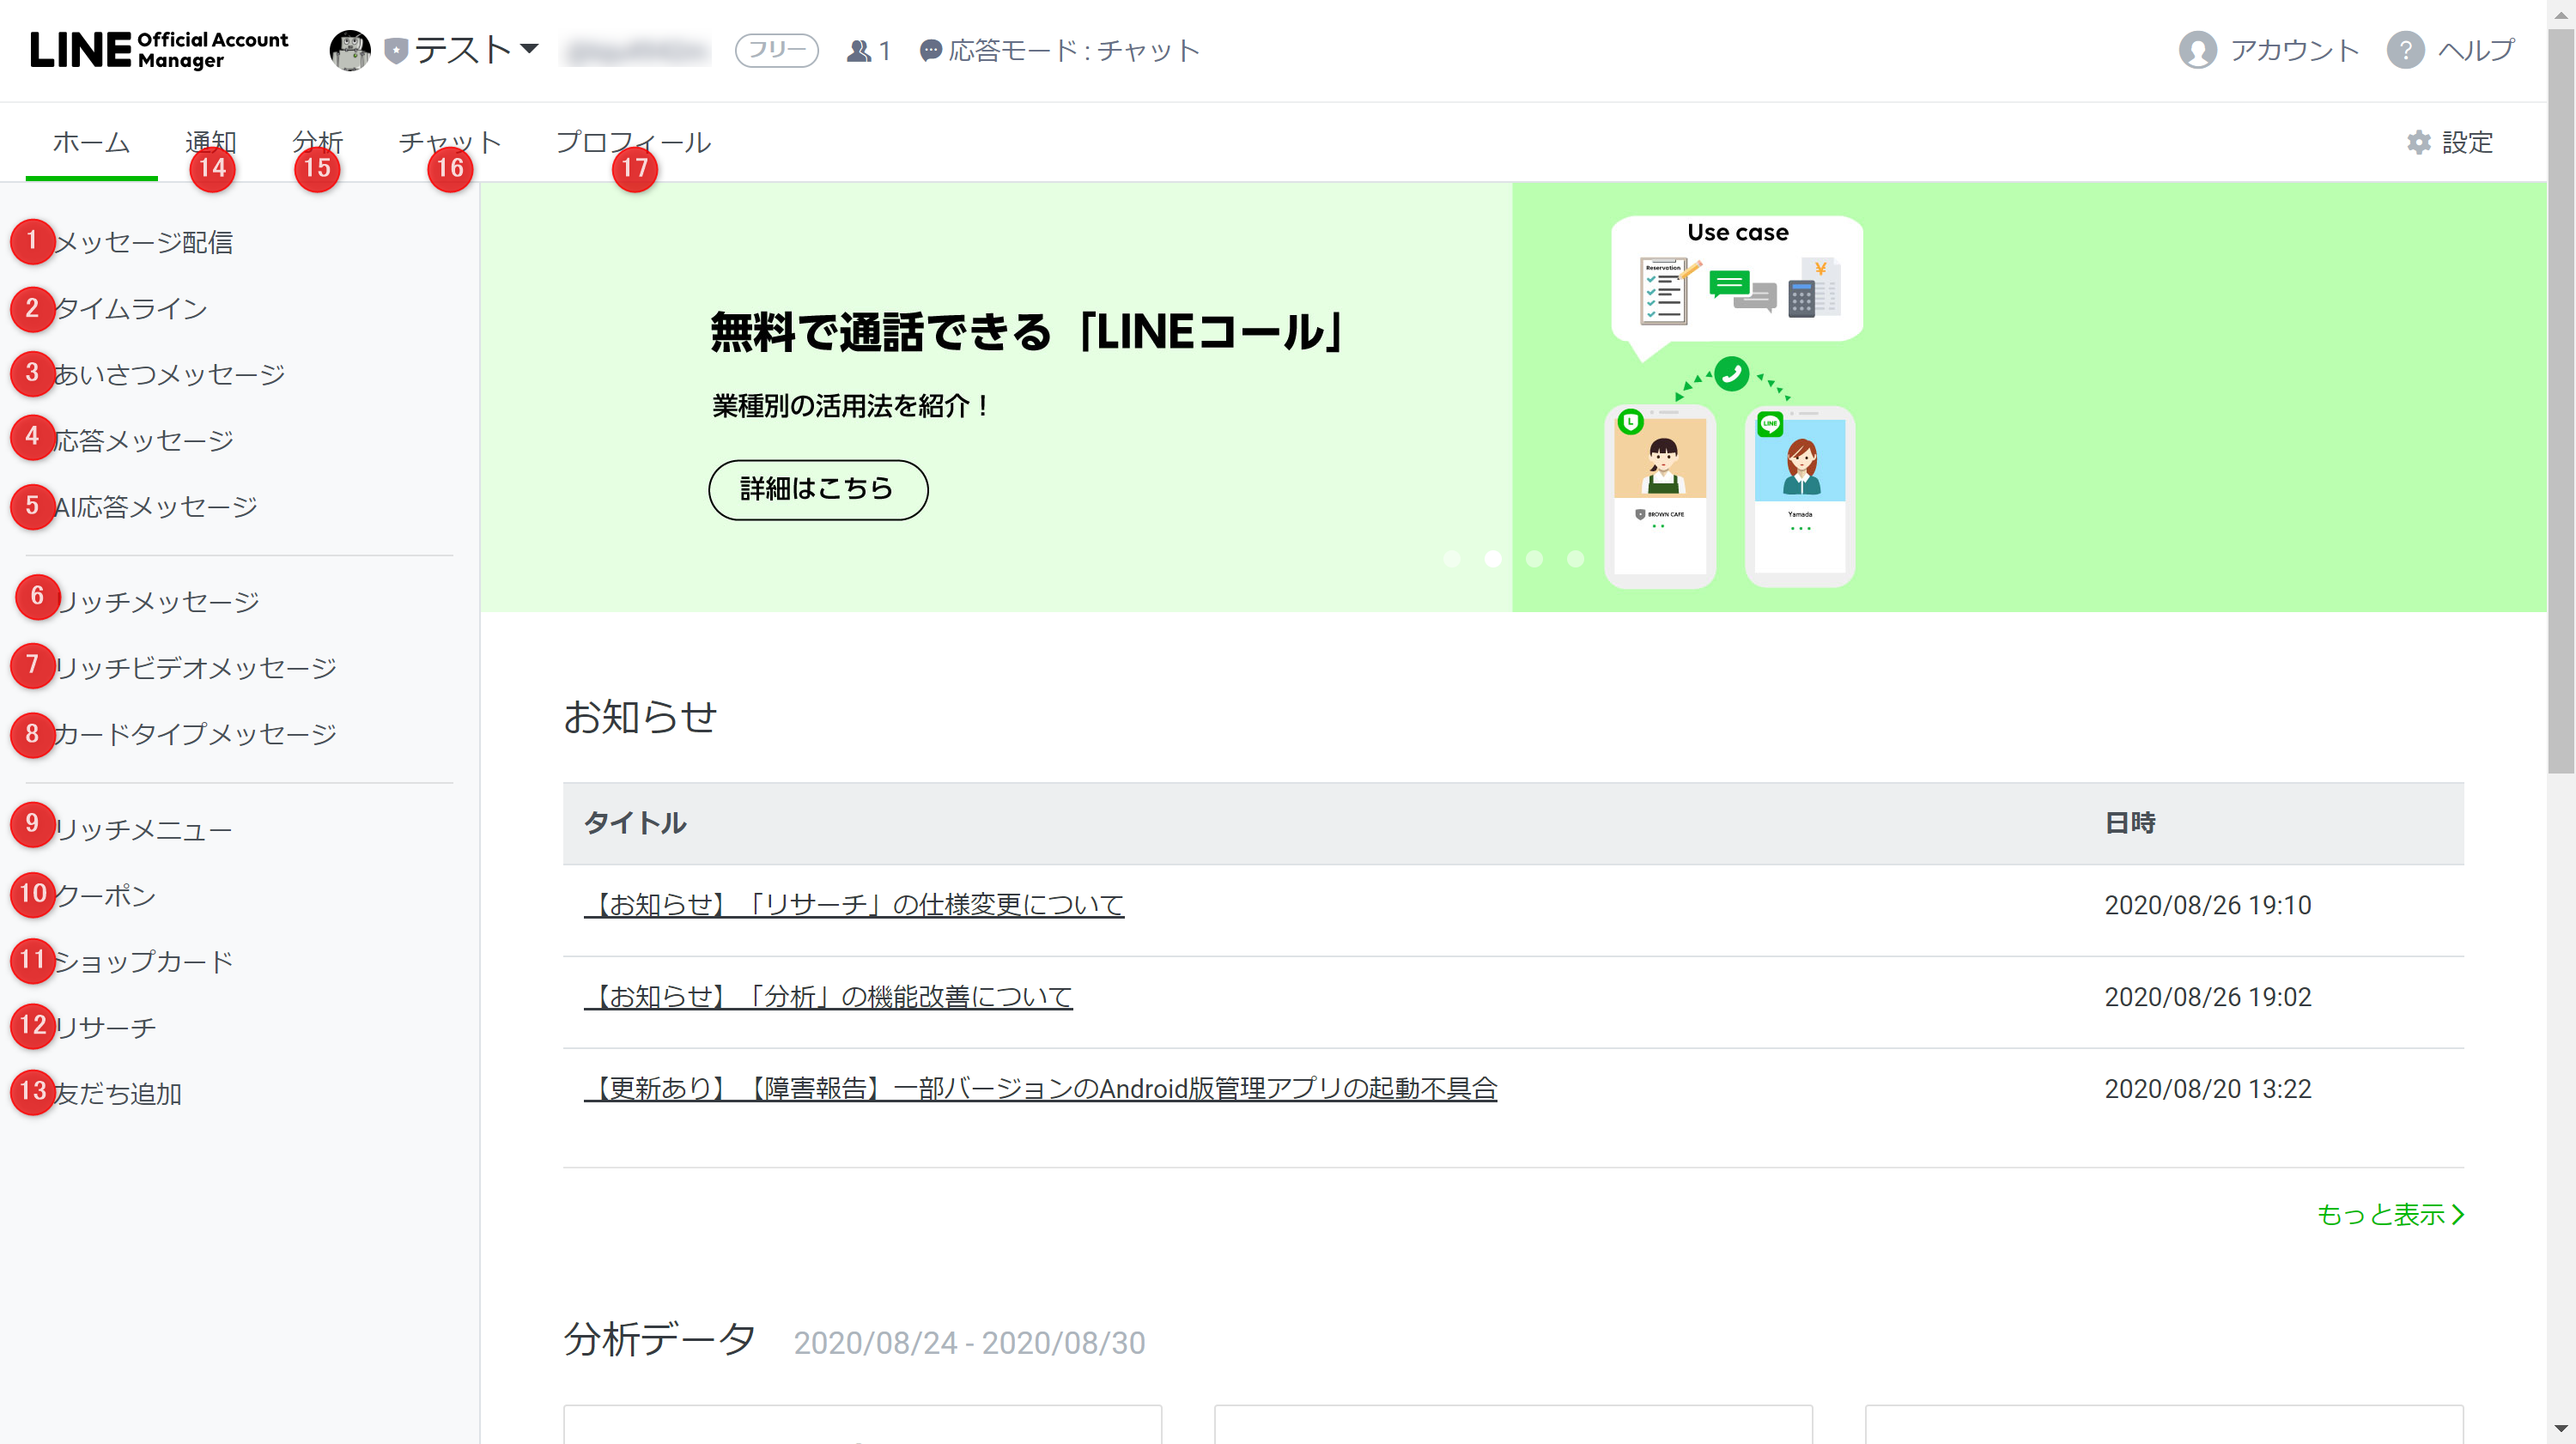 LINE公式アカウントの管理画面